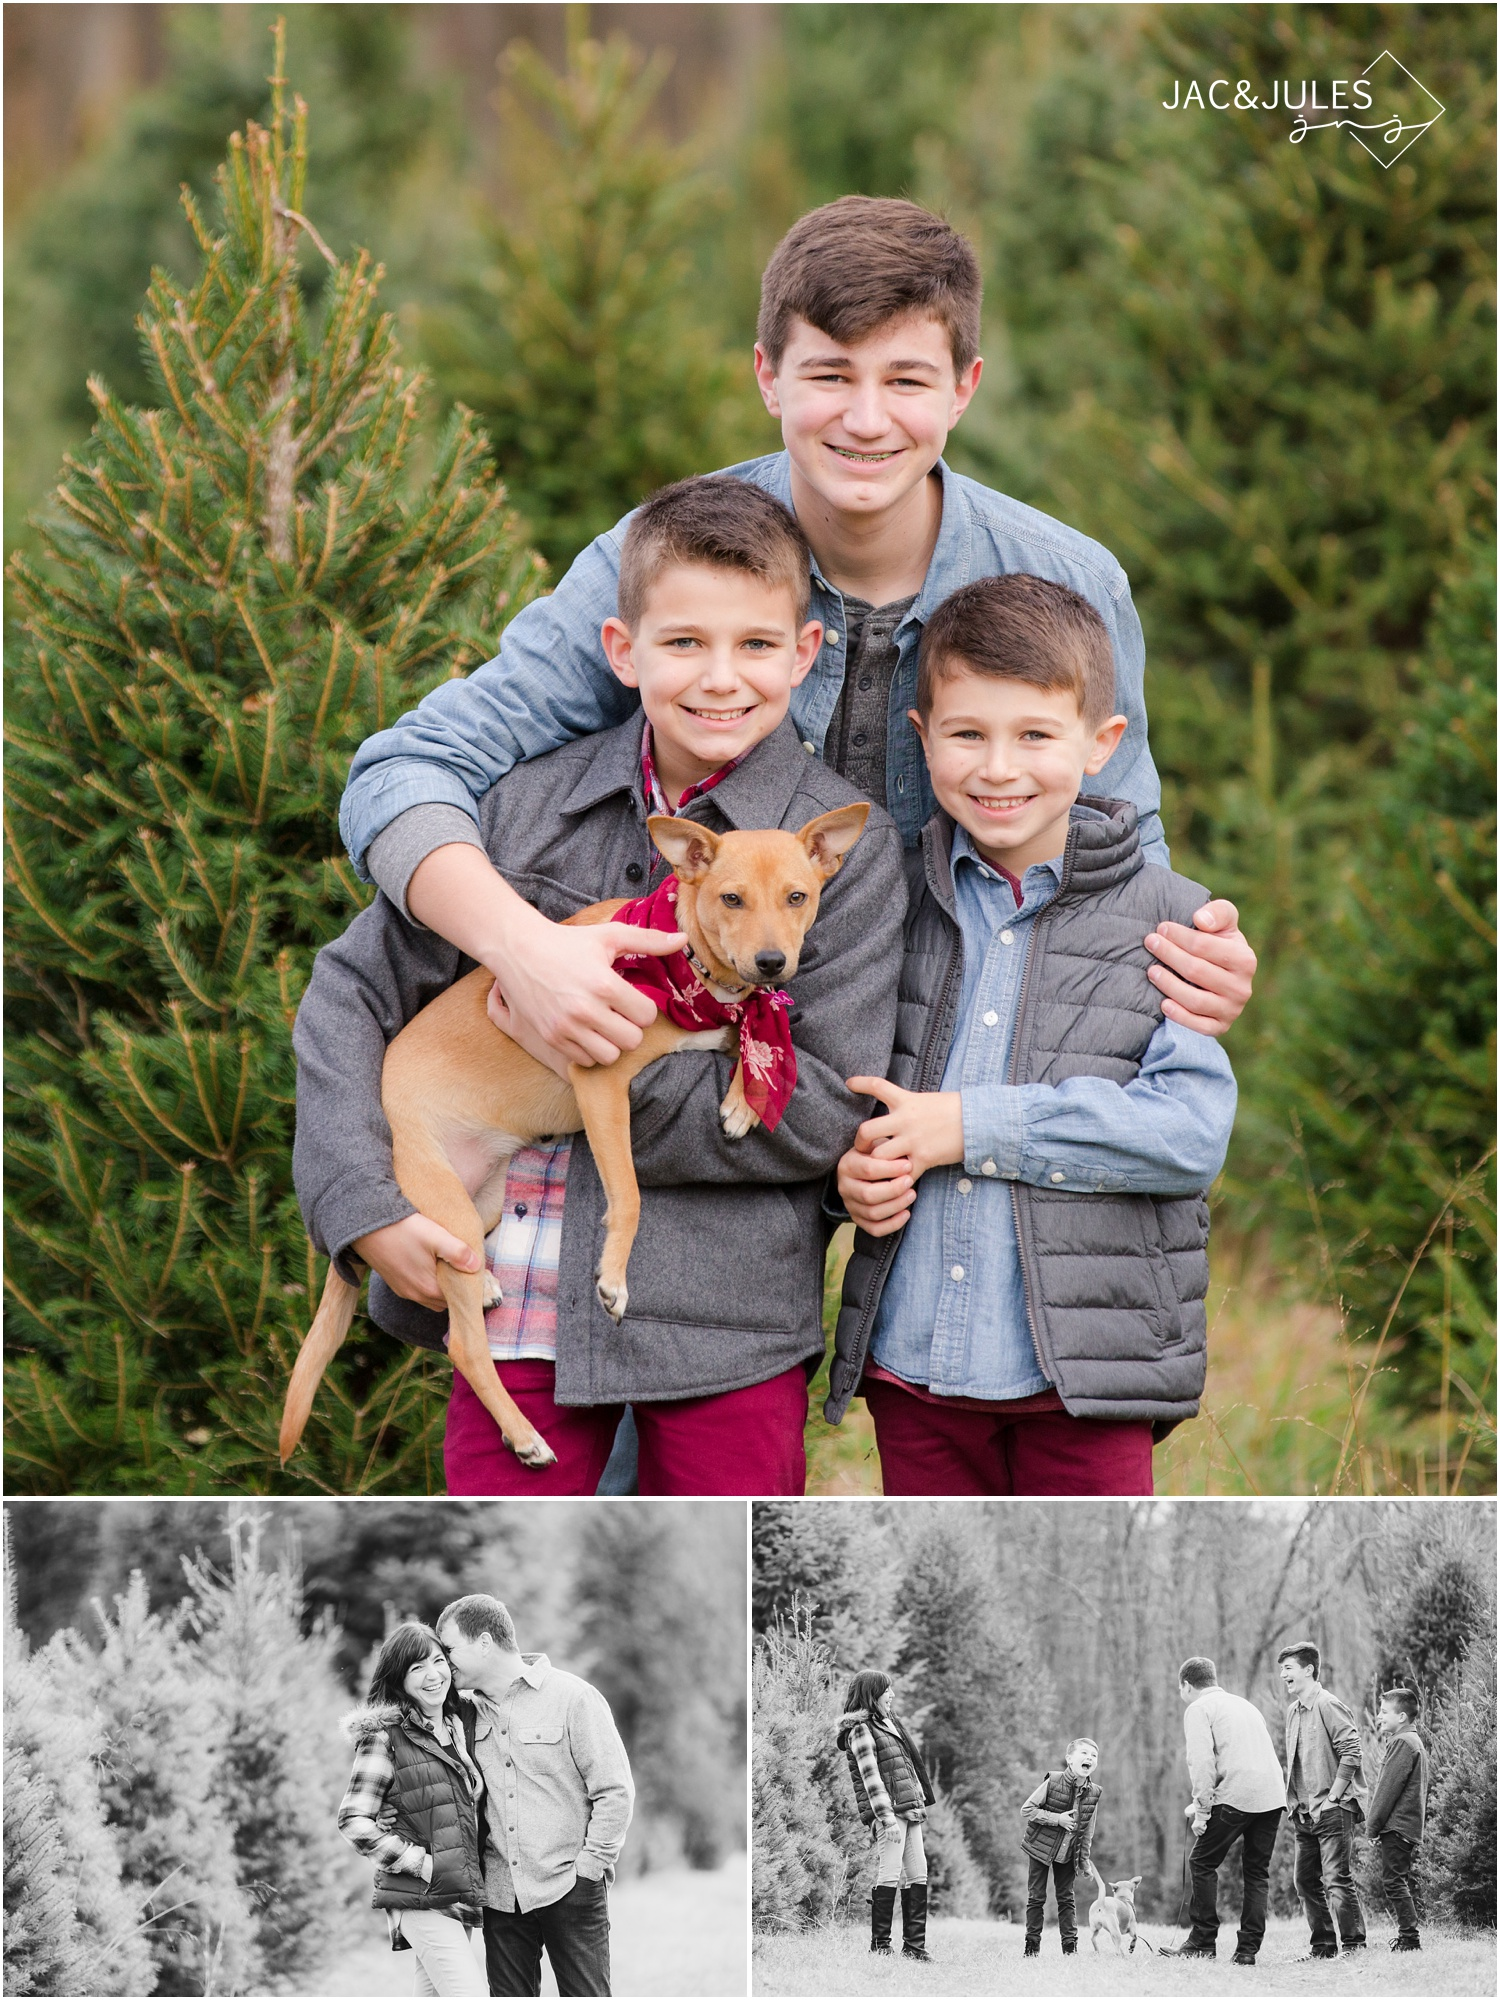 jacnjules photographs children for their christmas photos at Lone Silo Tree Farm in New Egypt NJ using natural light